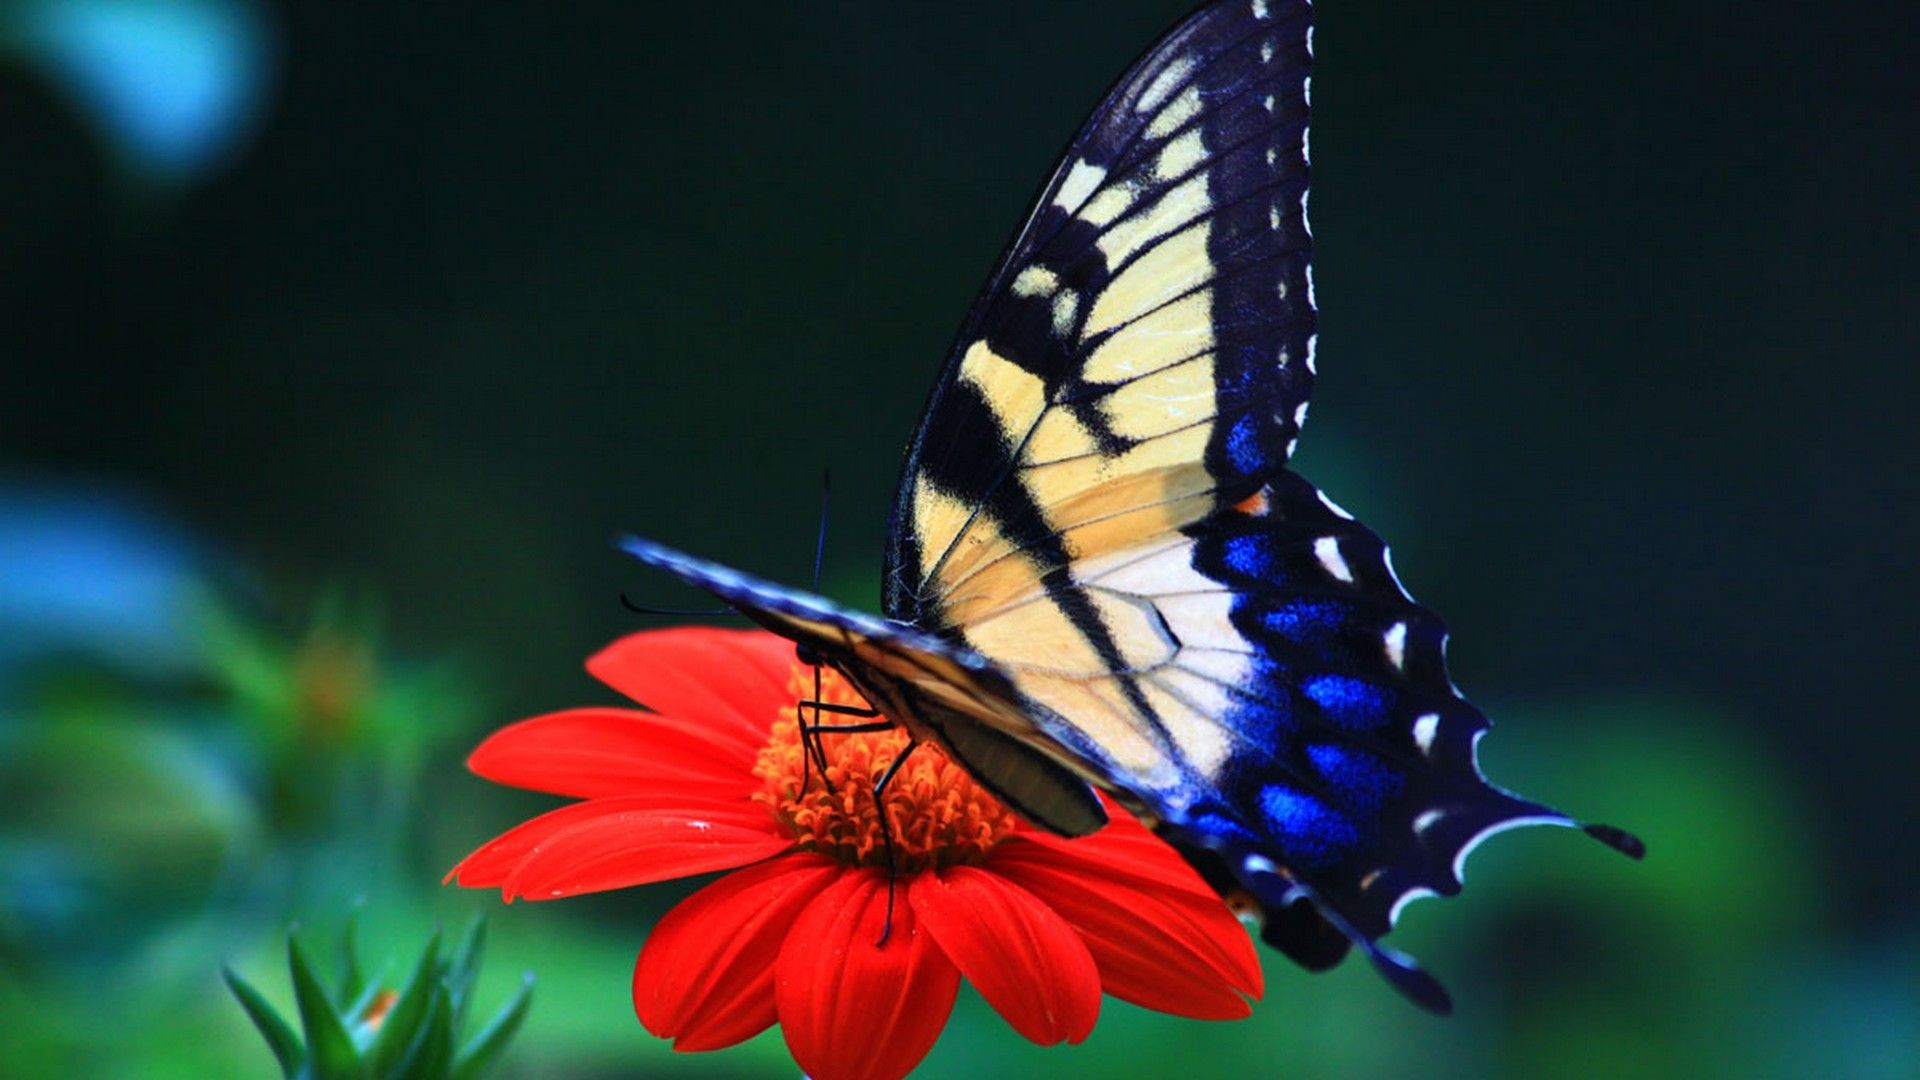 Beautiful Wallpapers Images Flowers And Butterflies